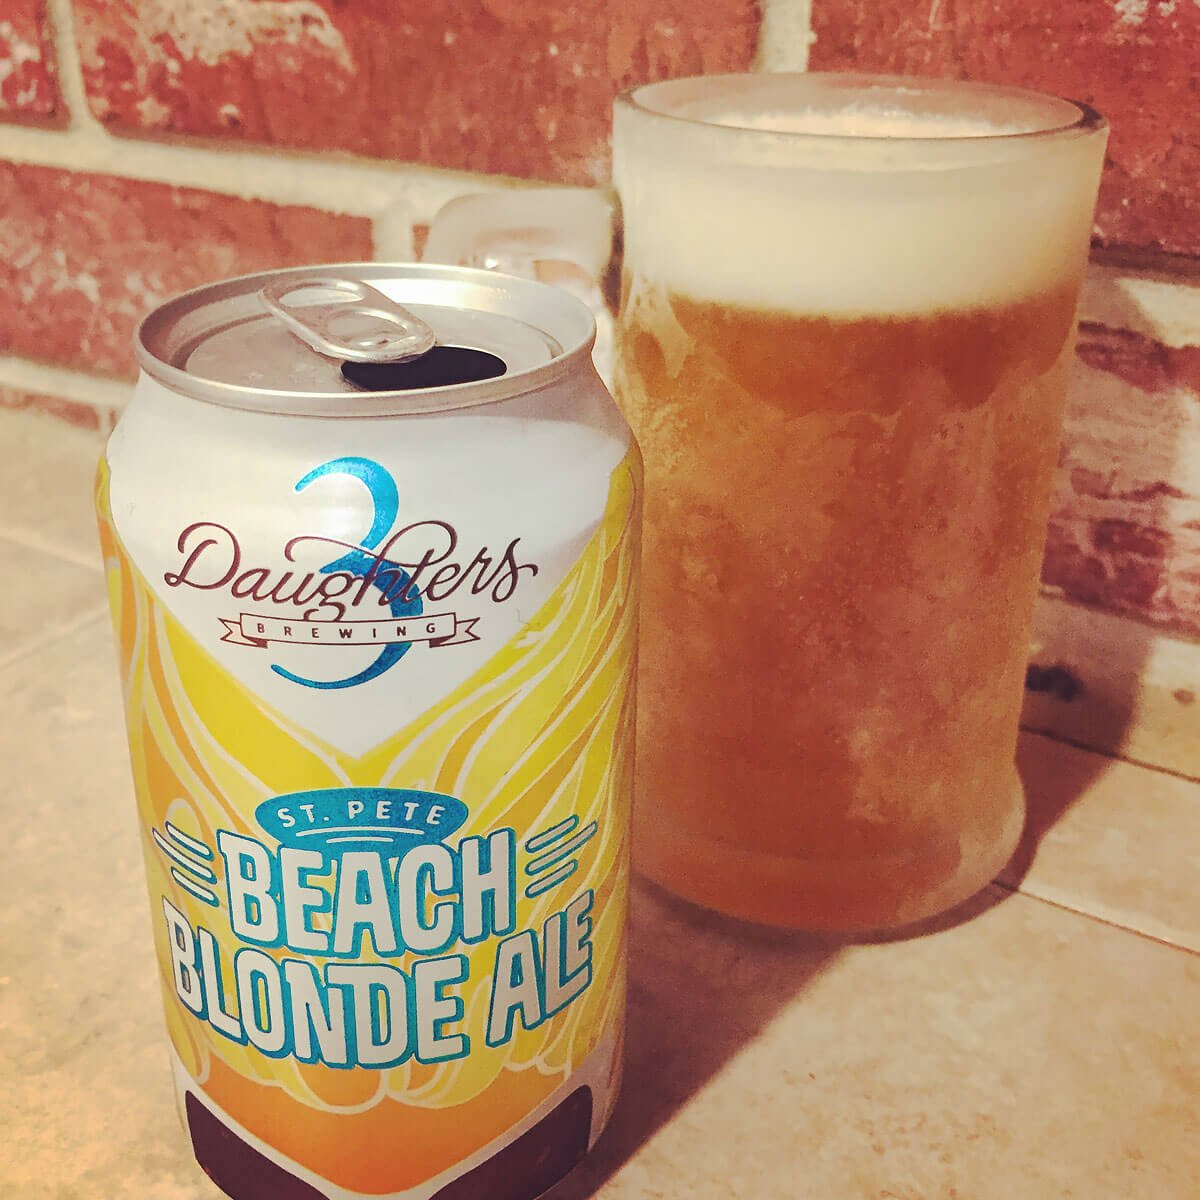 St. Pete Beach Blonde Ale, an American Blonde Ale by 3 Daughters Brewing